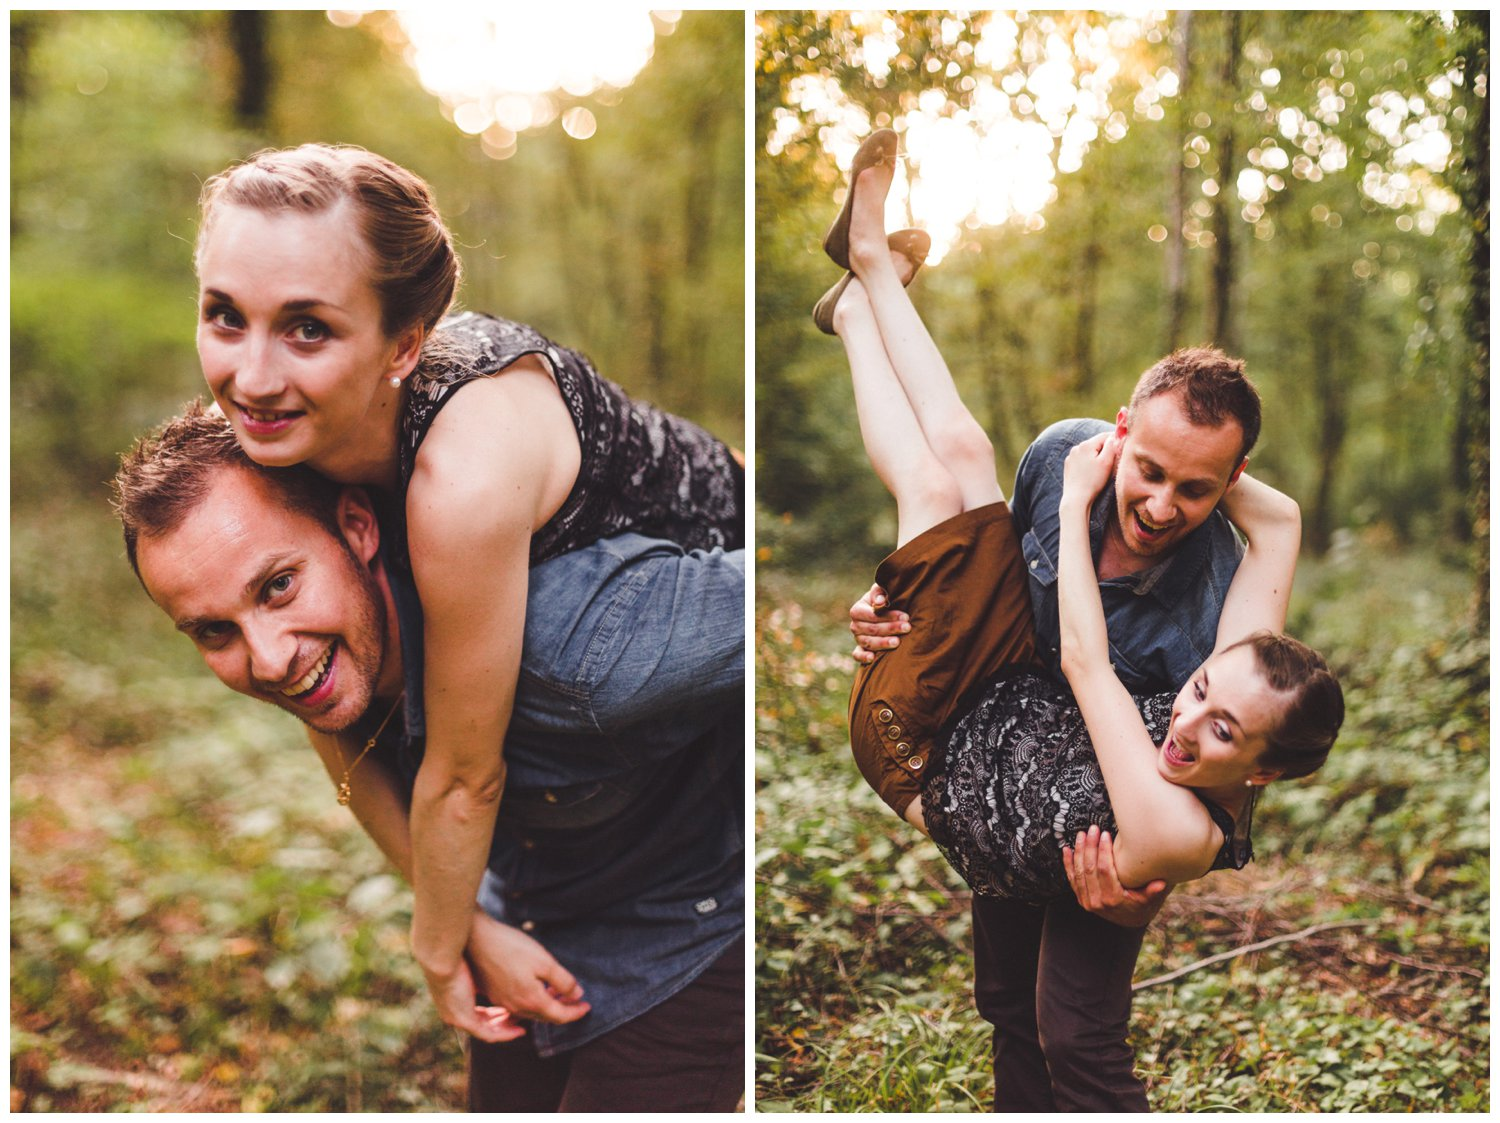 Séance photo couple engagement nature en foret de metz